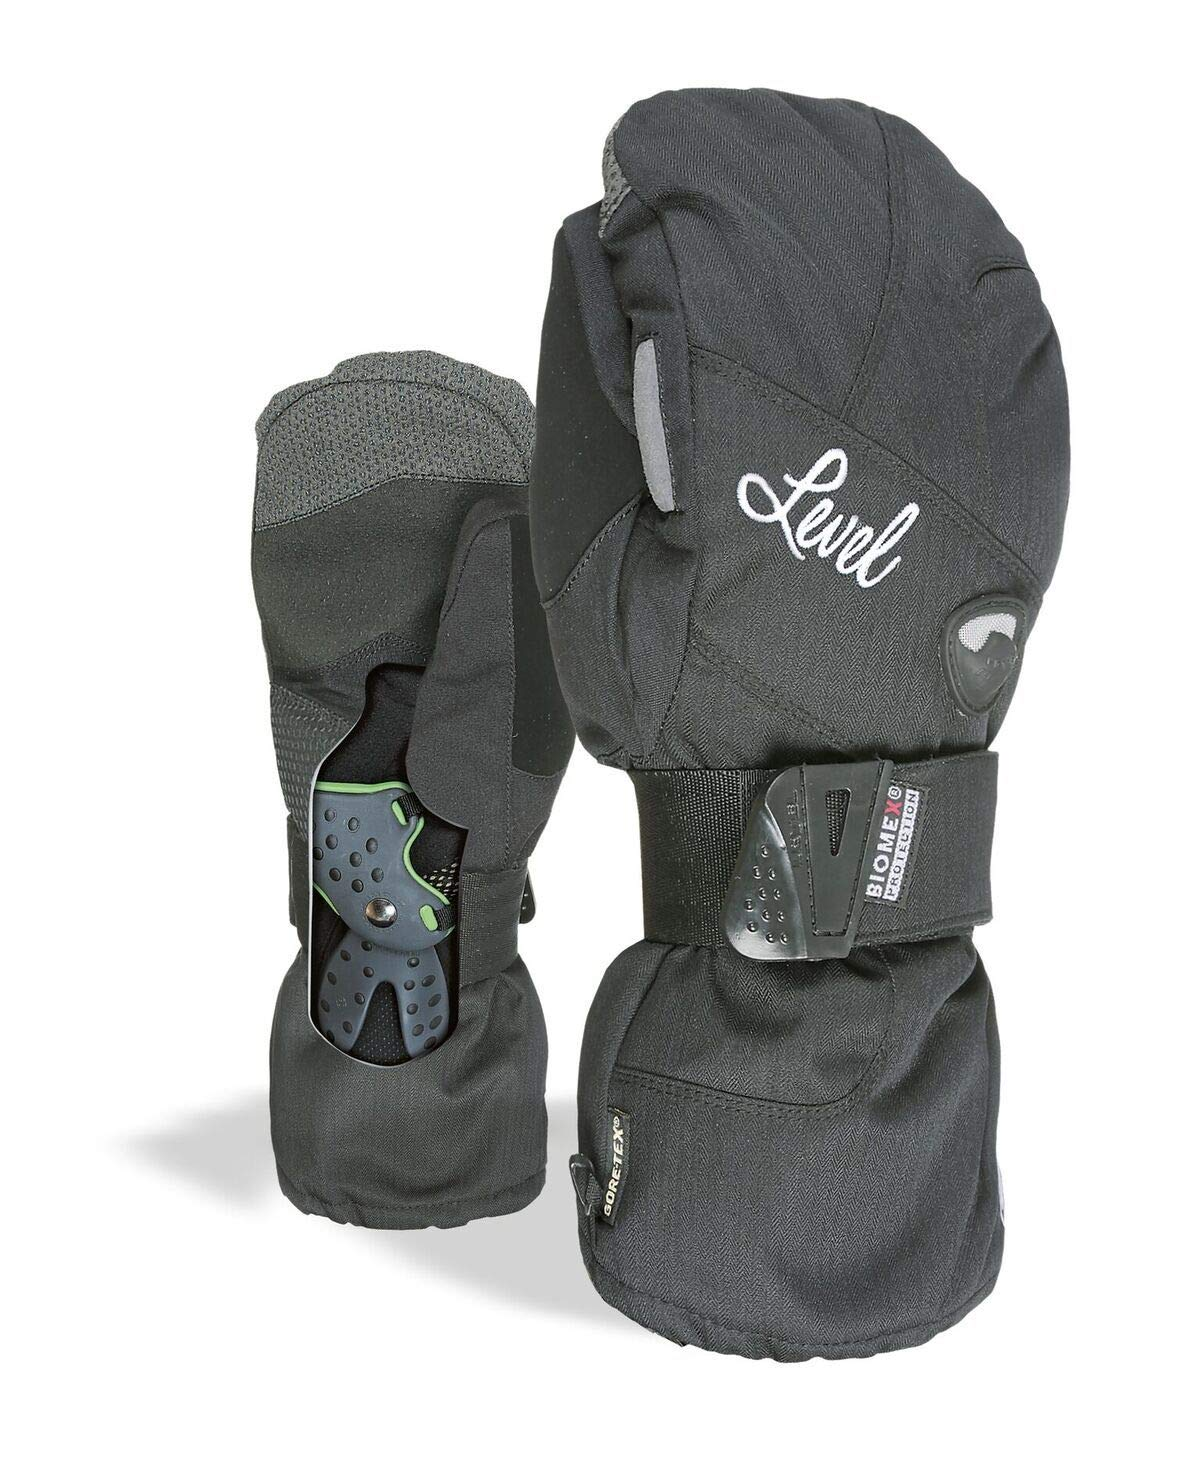 """Level Half Pipe""""Plus"""" Womens Snowboard Mittens with BioMex Wrist Guards, Waterproof GoreTex Shell, Warm ThermoPlus Liner"""